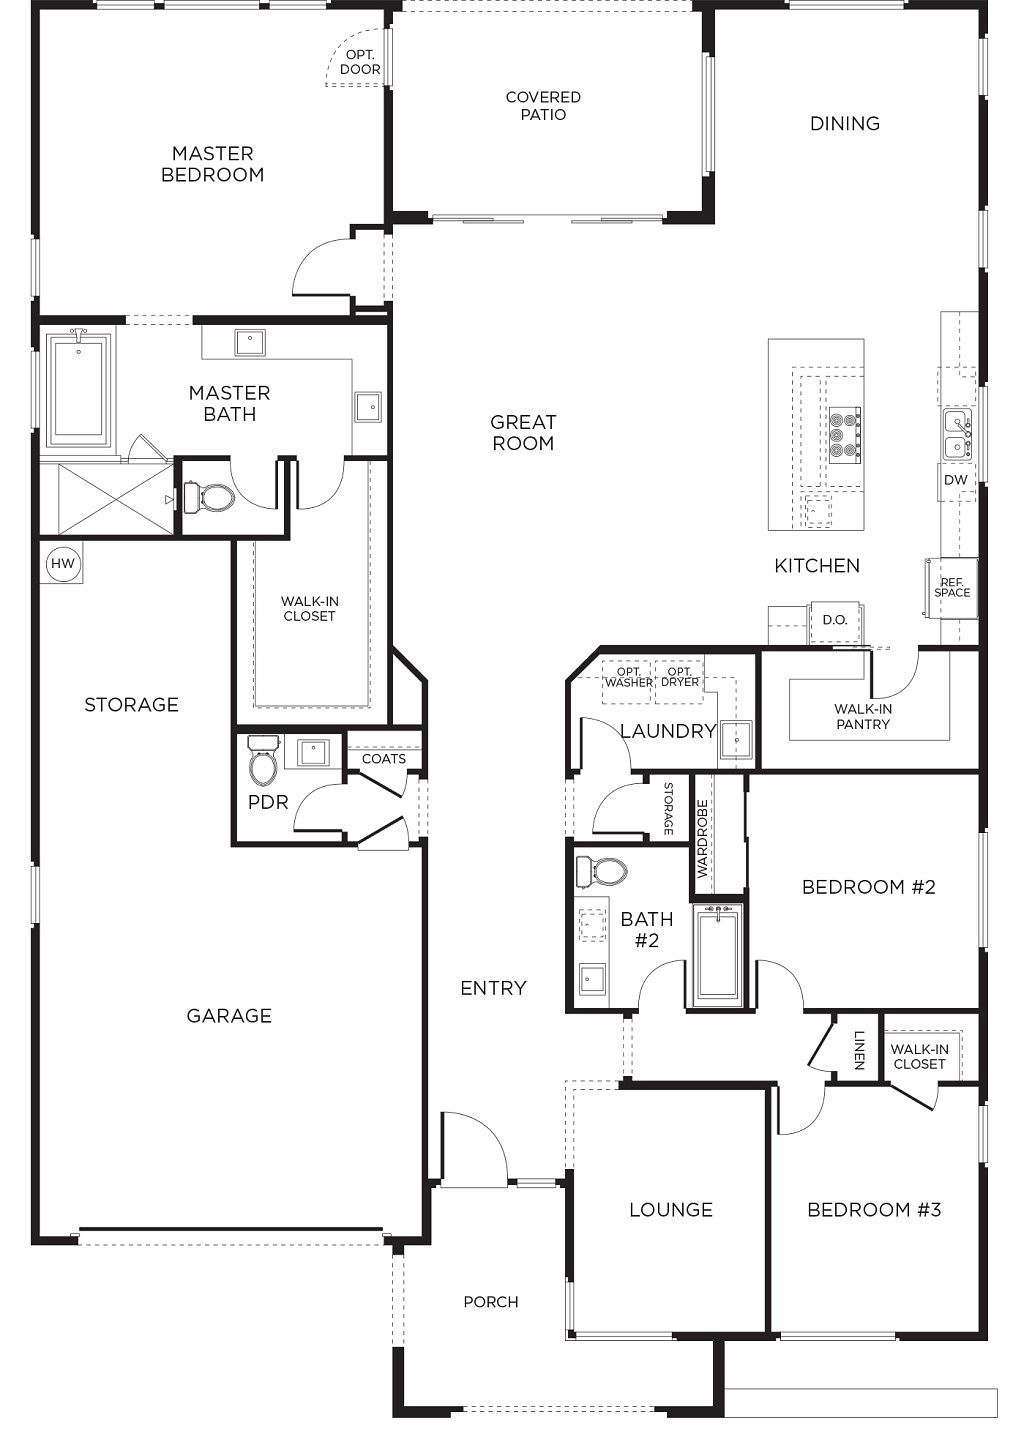 Find Your New Pardee Home Today Barndominium Floor Plans Floor Plans House Plans